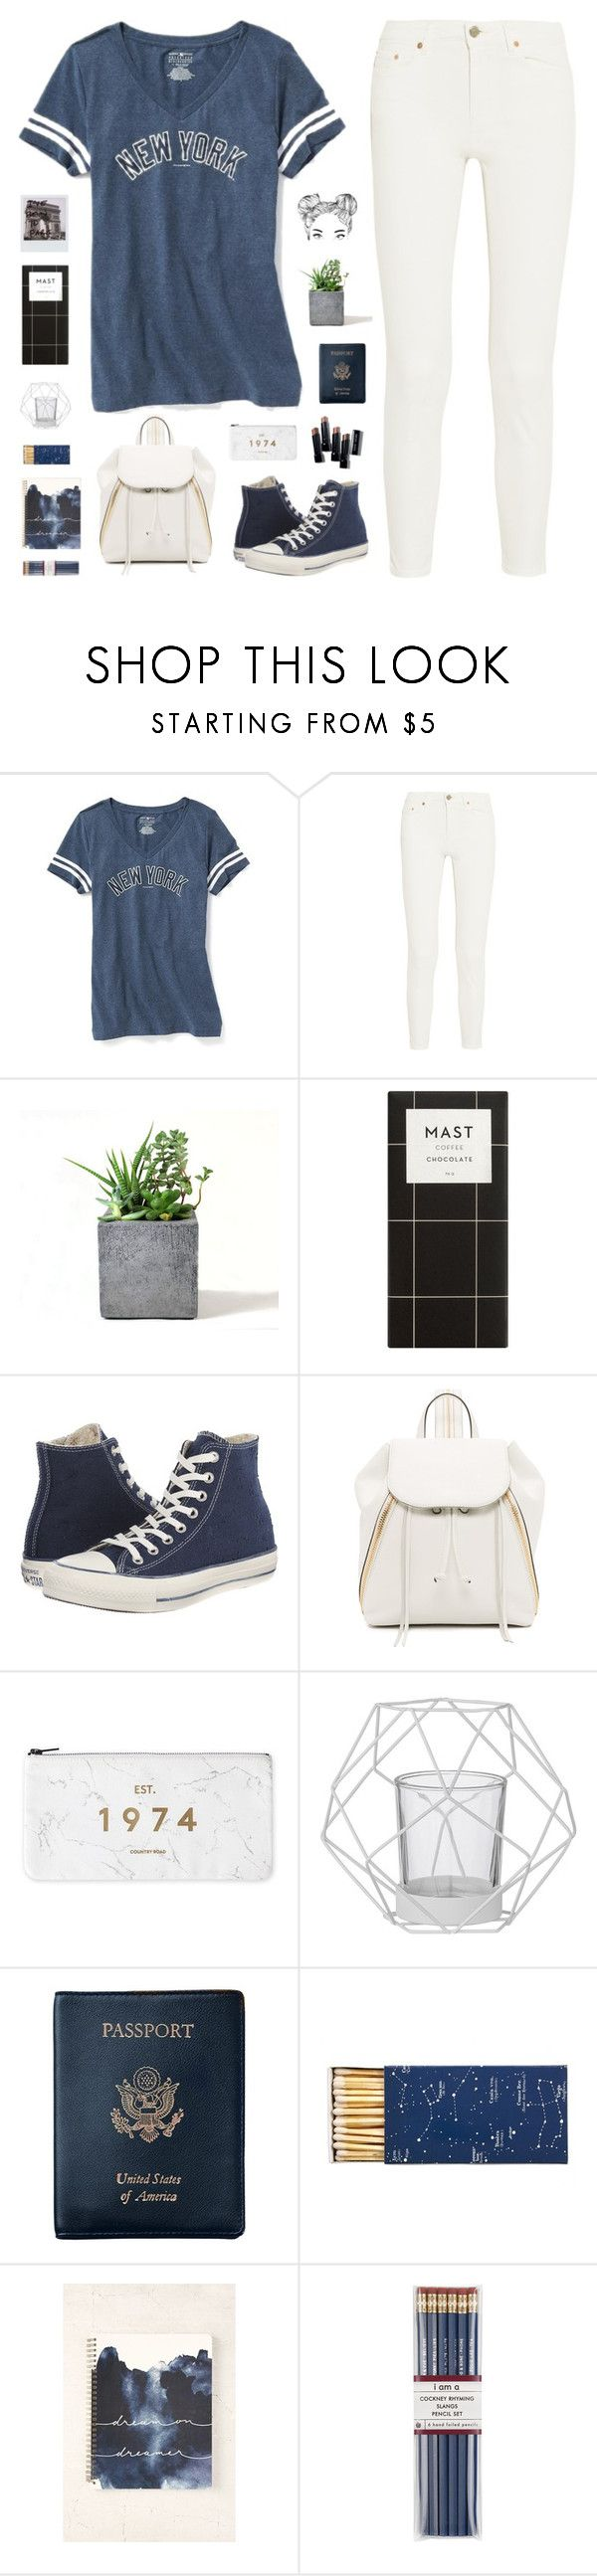 """""""#556 The Varsity Player"""" by everydaydiscovery ❤ liked on Polyvore featuring Old Navy, Acne Studios, Rough Fusion, Converse, Rebecca Minkoff, Bloomingville, Royce Leather, Jayson Home, Urban Outfitters and i am a"""